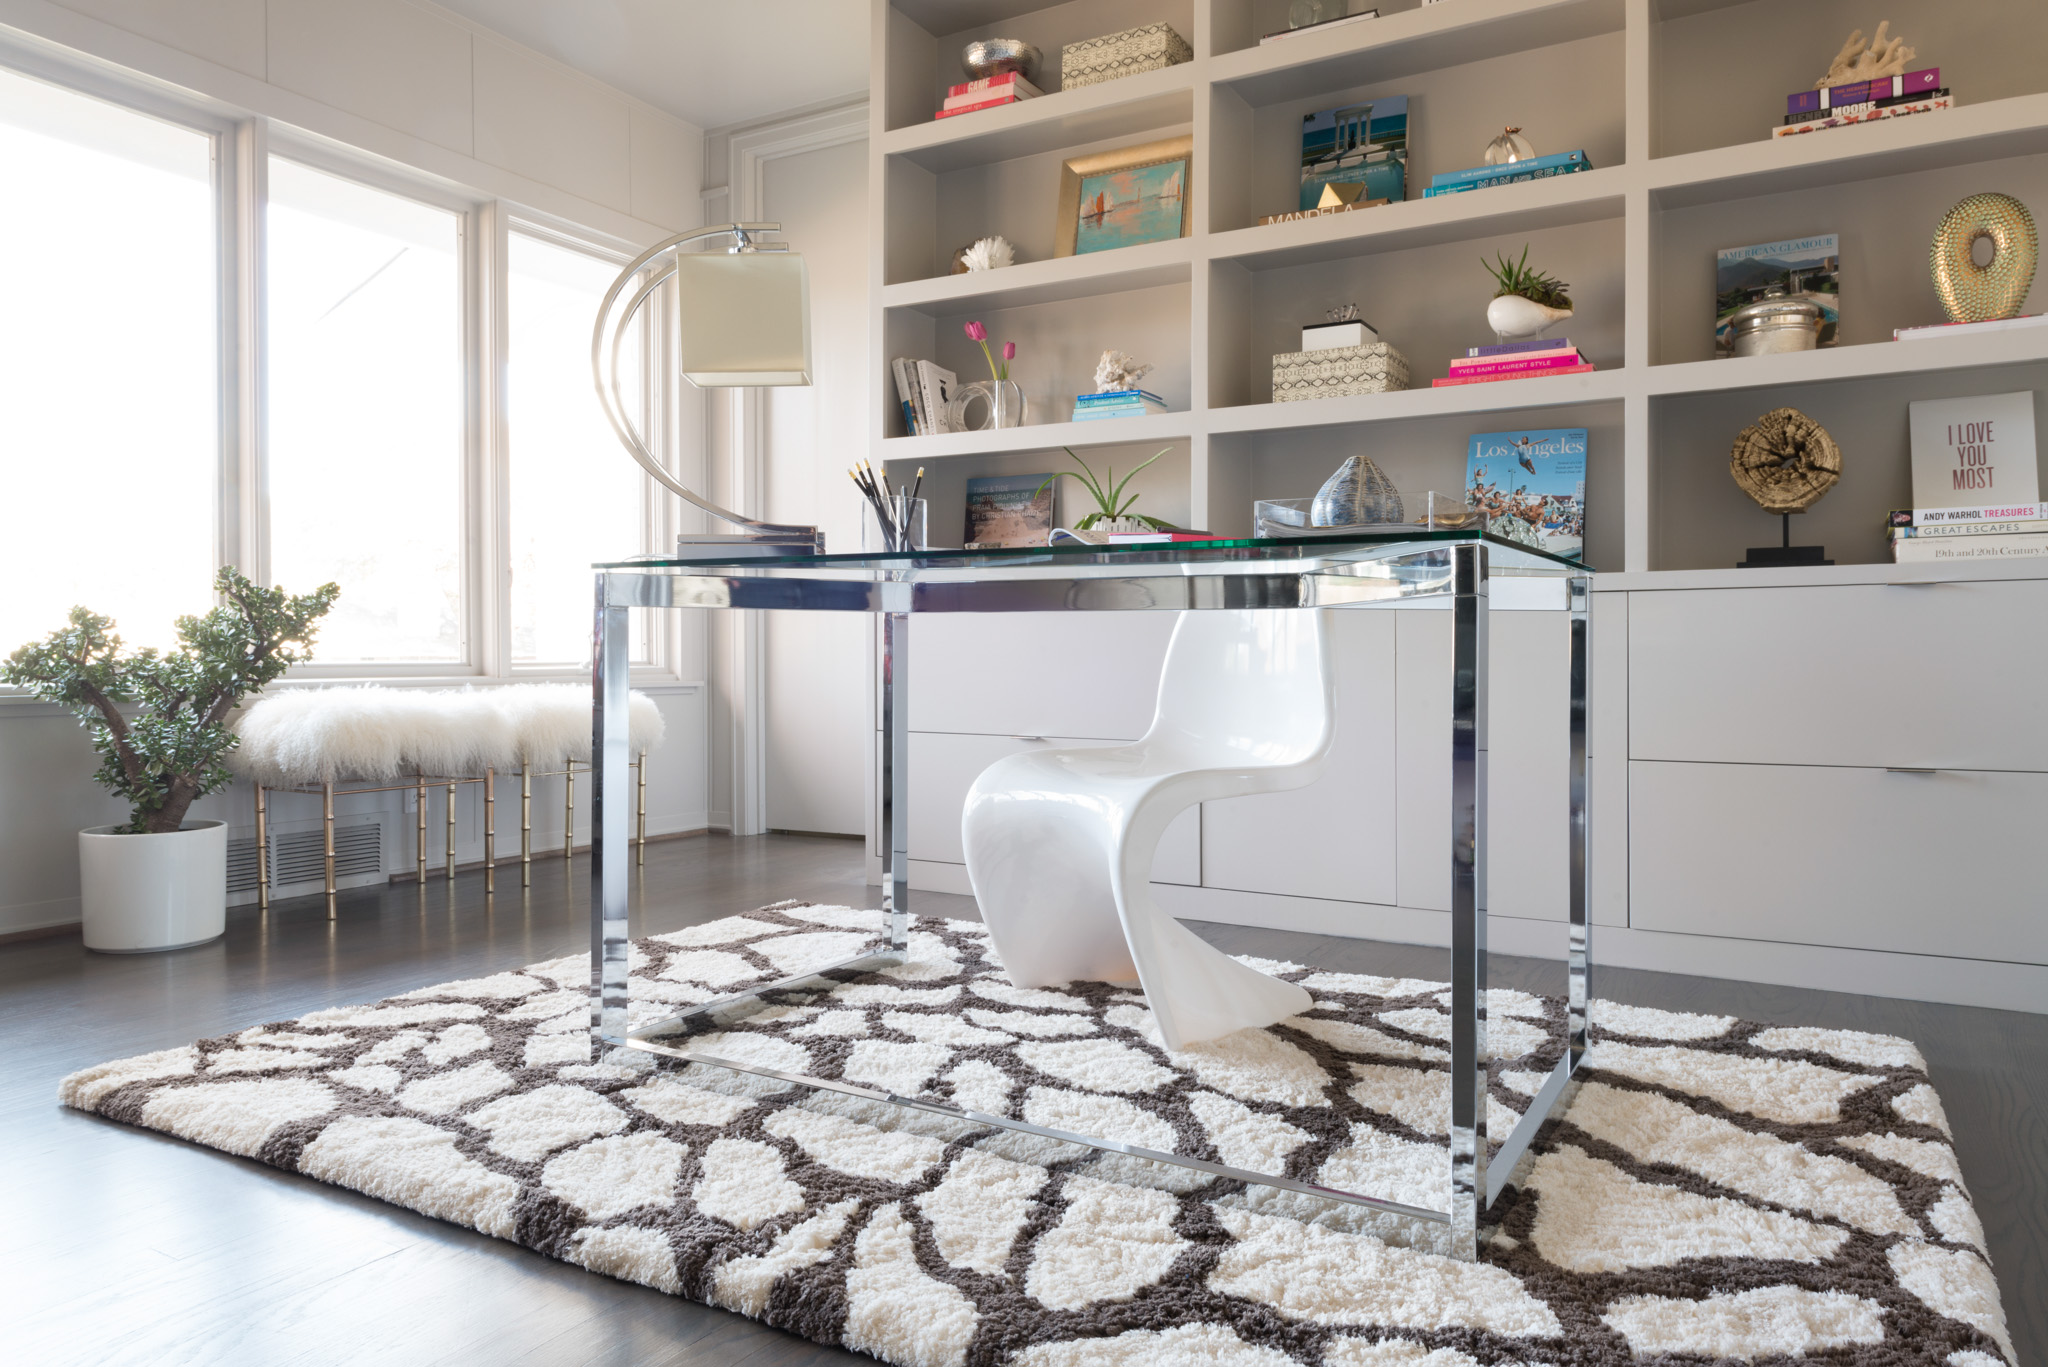 mesmerizing loloi rugs on wooden floor plus desk and wooden rack for home office decor ideas